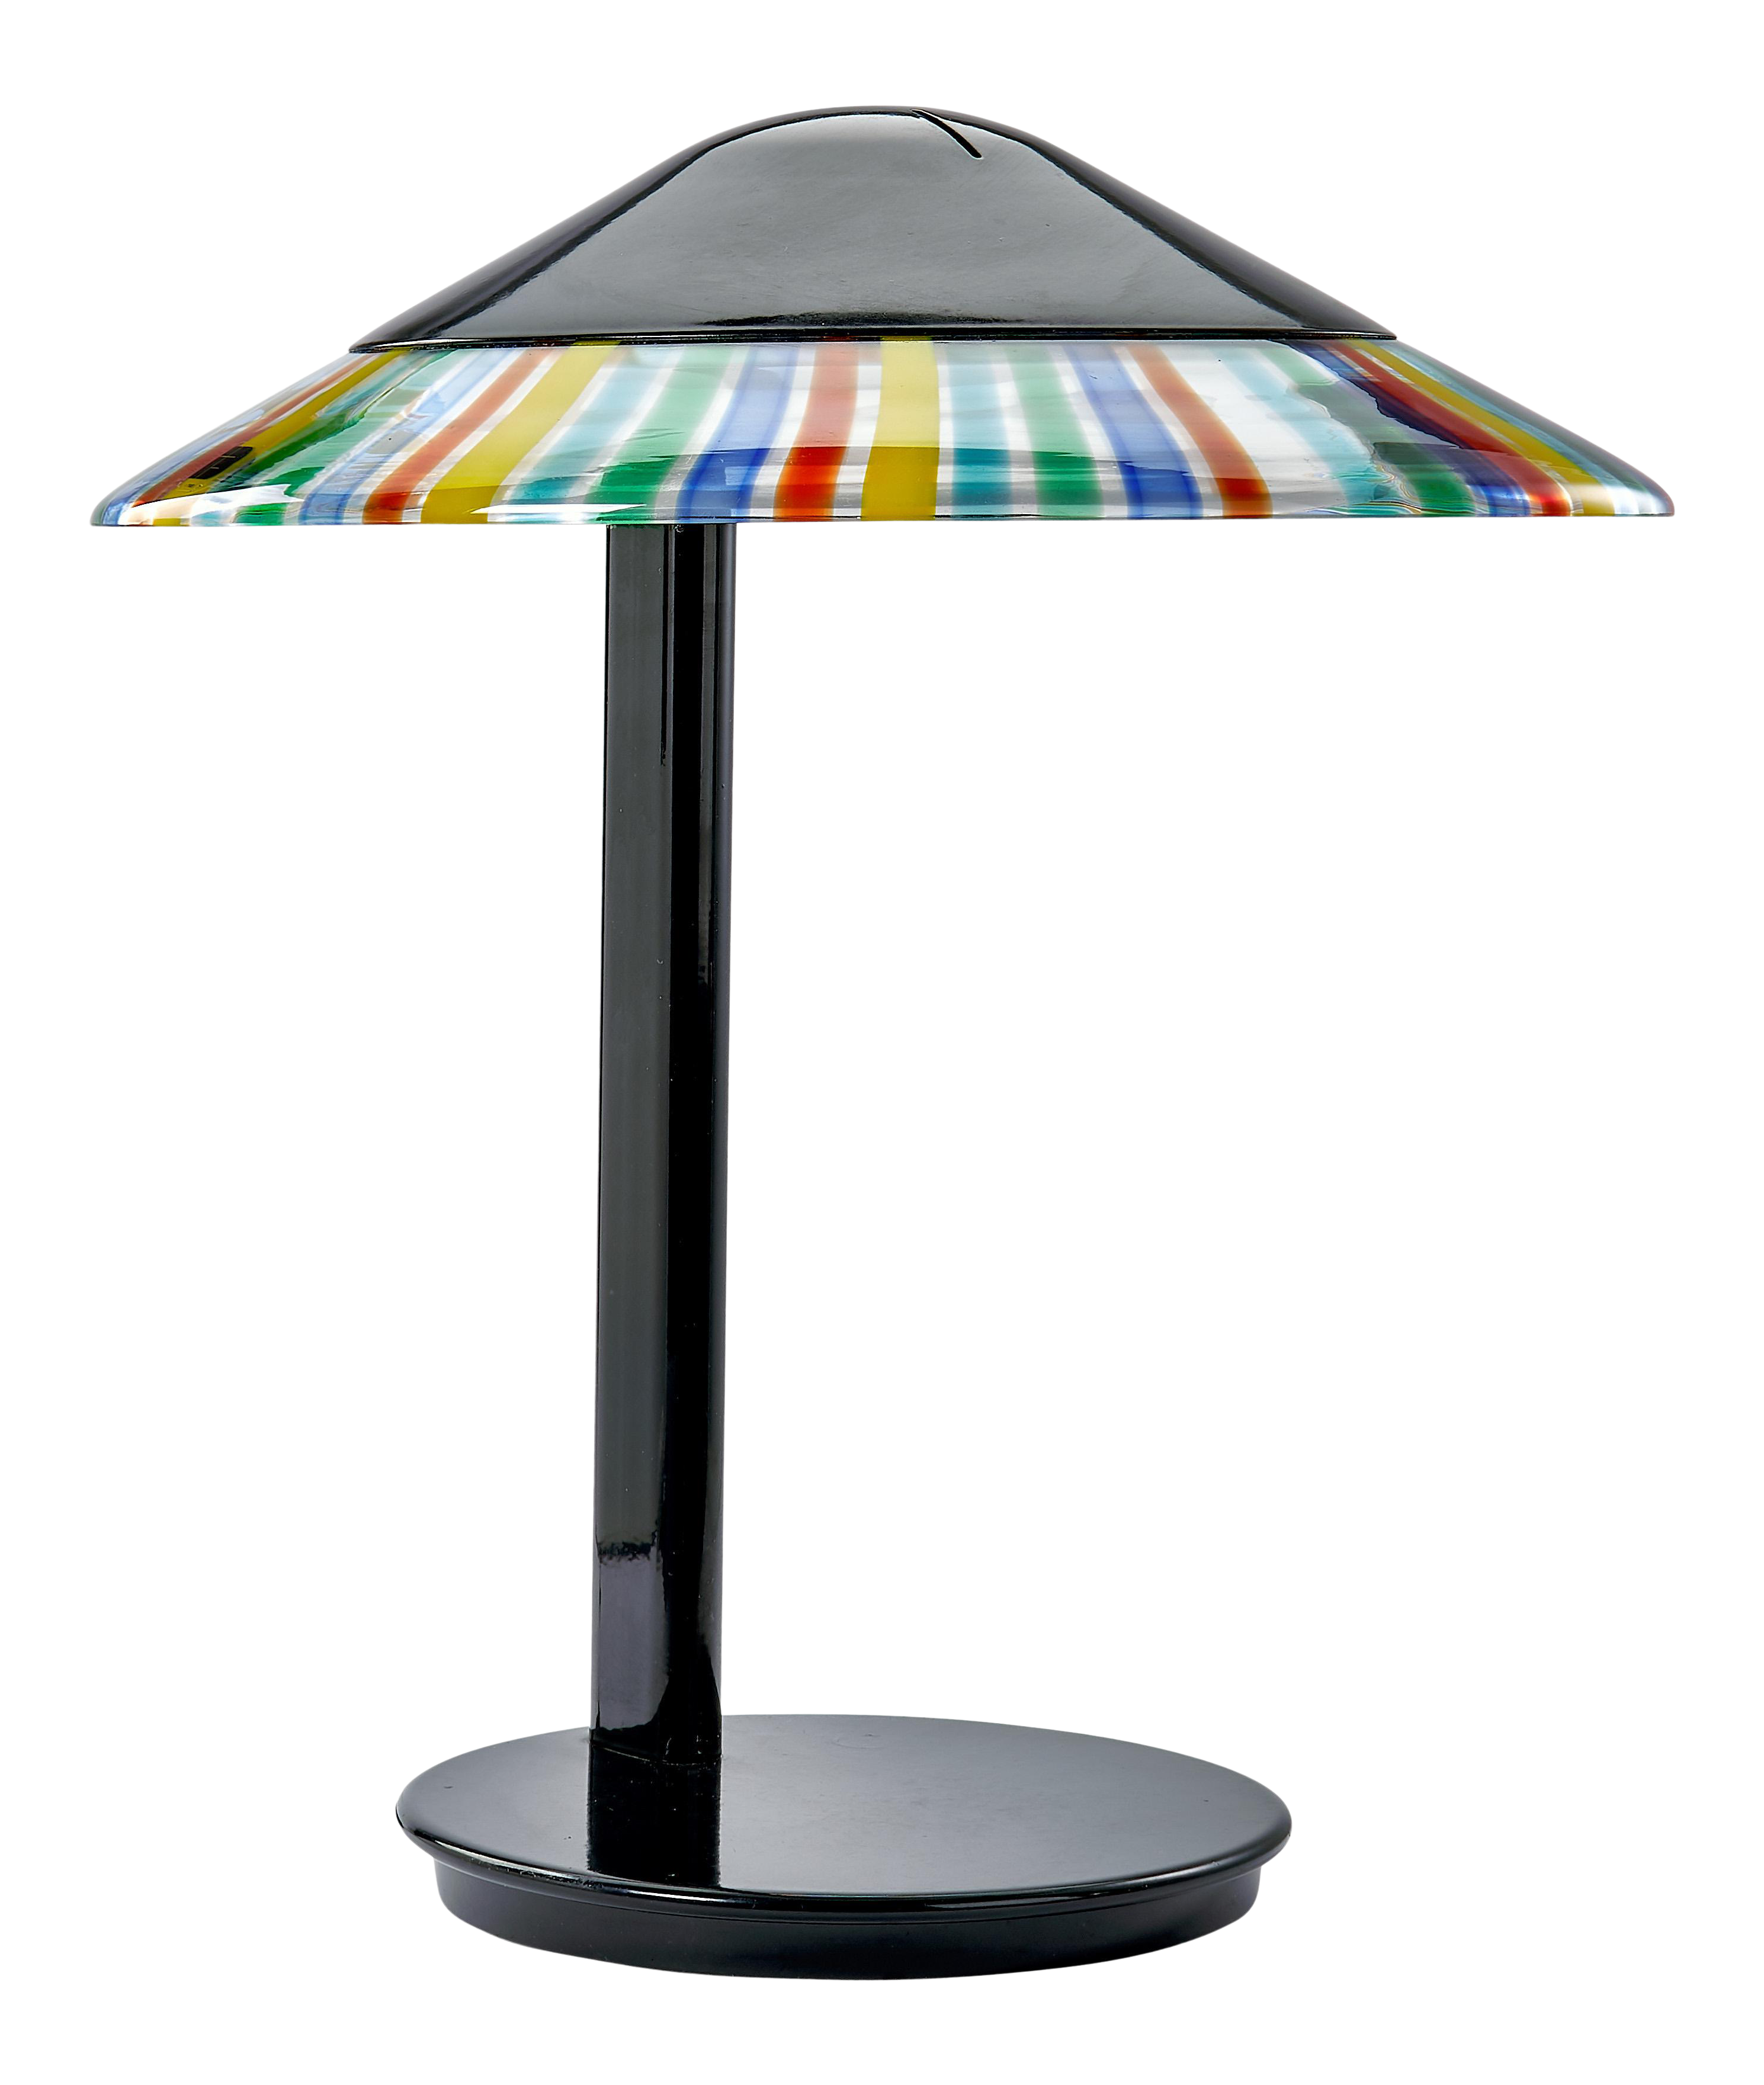 Image of: Italian Mid Century Modern Desk Lamp By Itre Black With Multi Colored Murano Glass Skirt On Shade Chairish